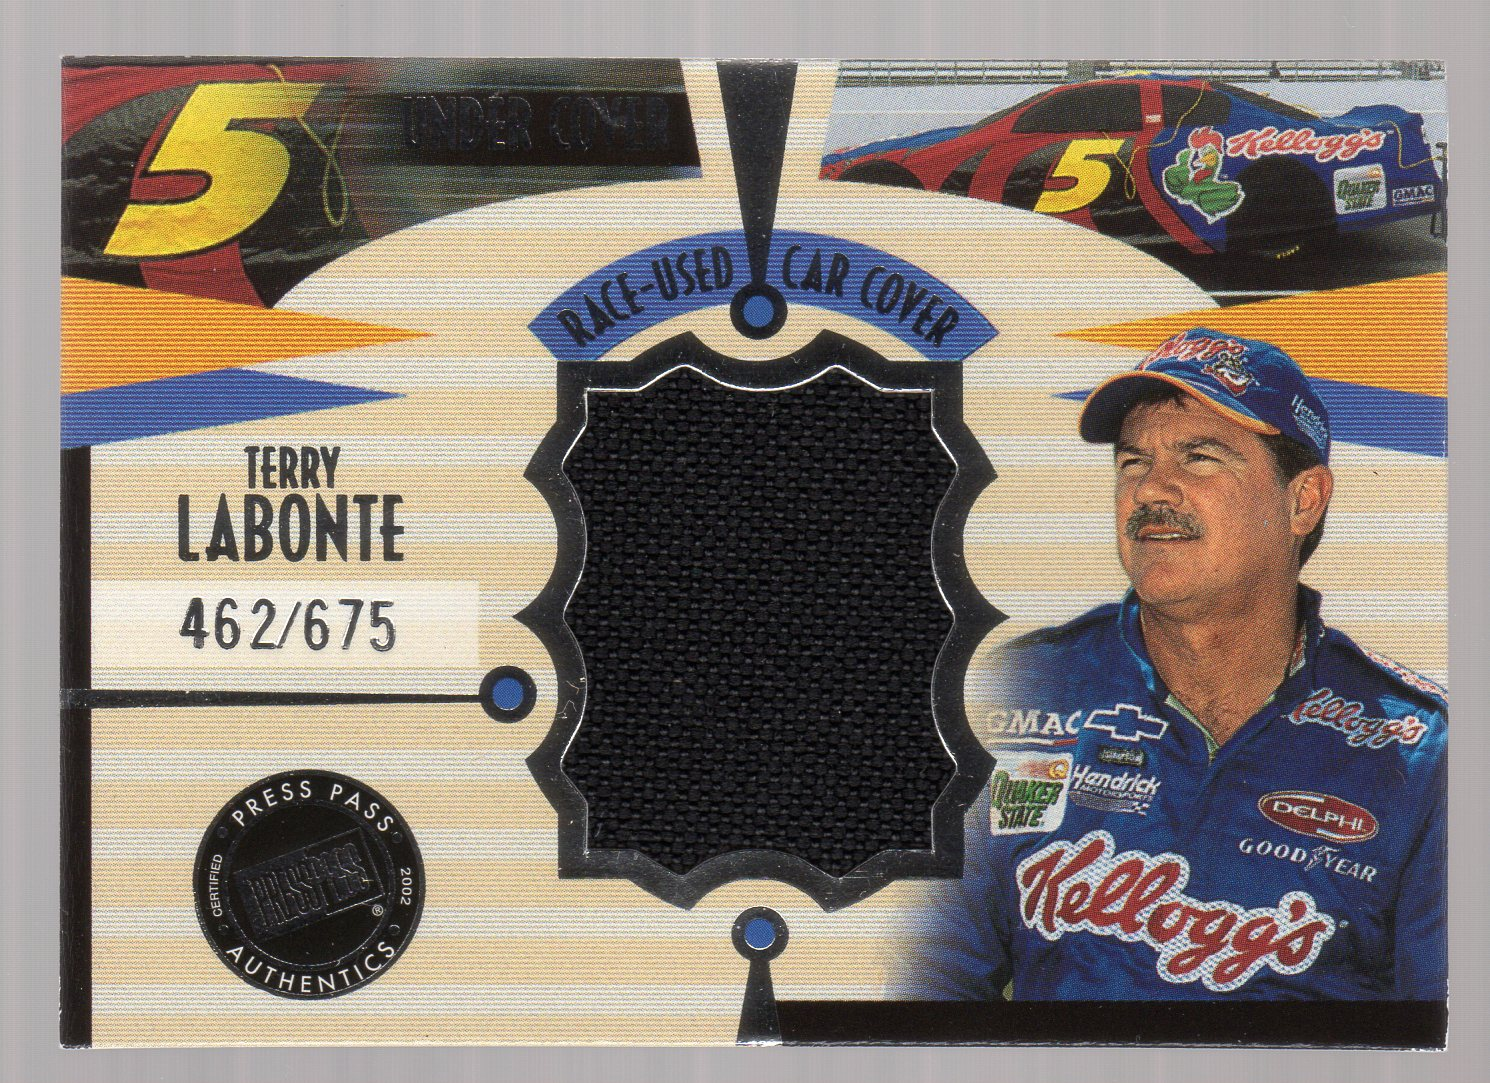 2002 Press Pass Eclipse Under Cover Drivers #CD4 Terry Labonte